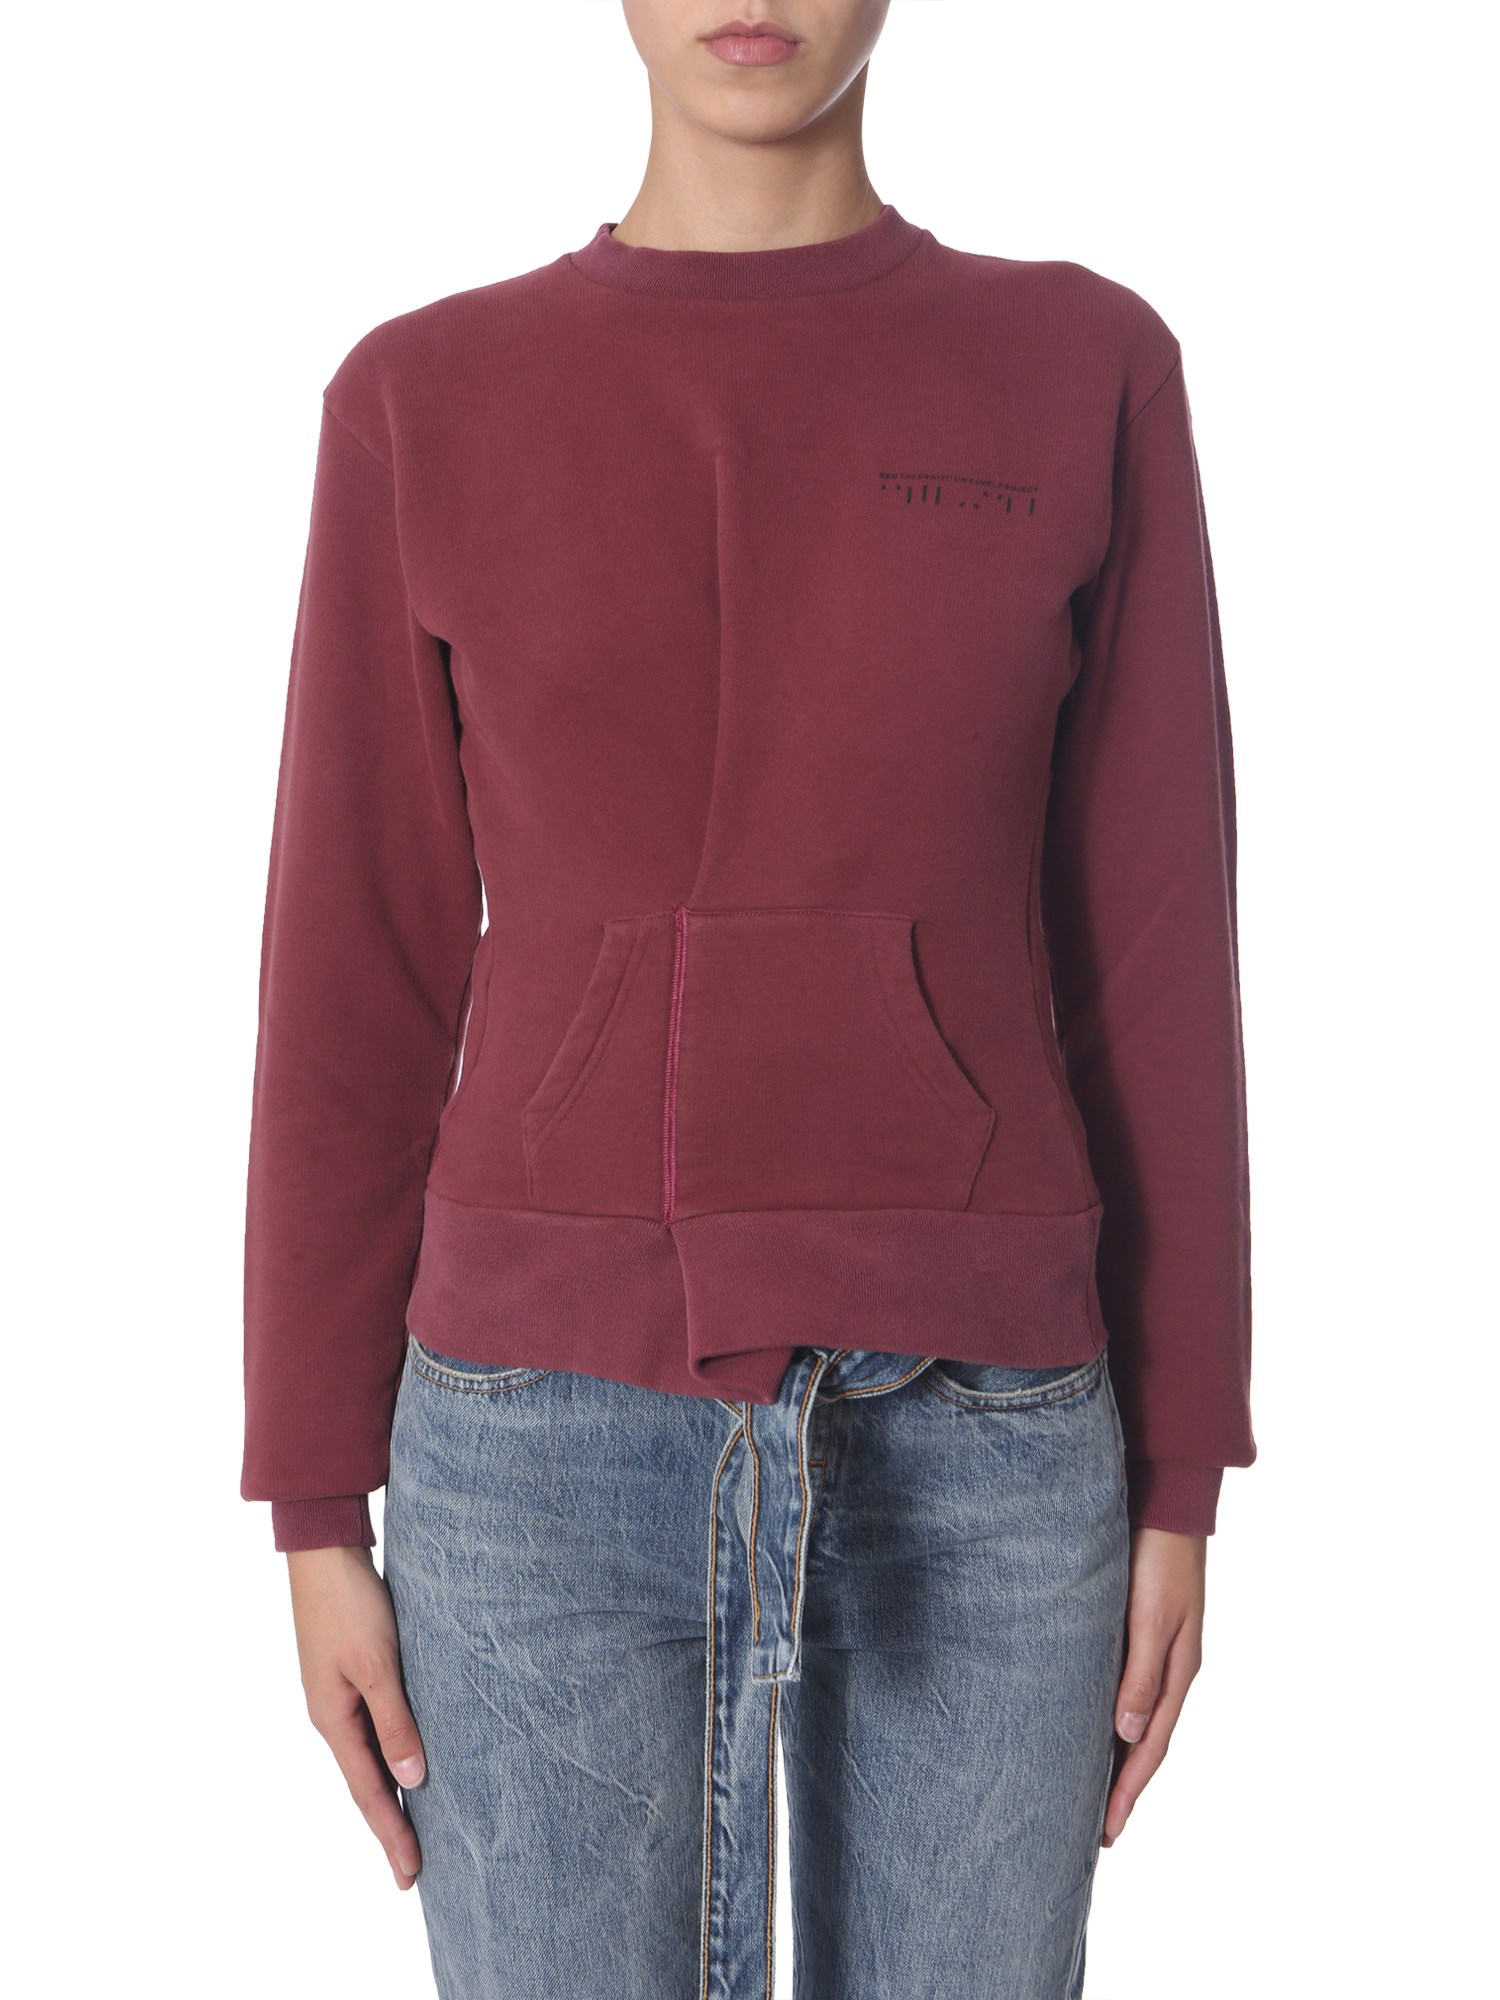 Ben Taverniti Unravel Project Tops CREW NECK SWEATSHIRT